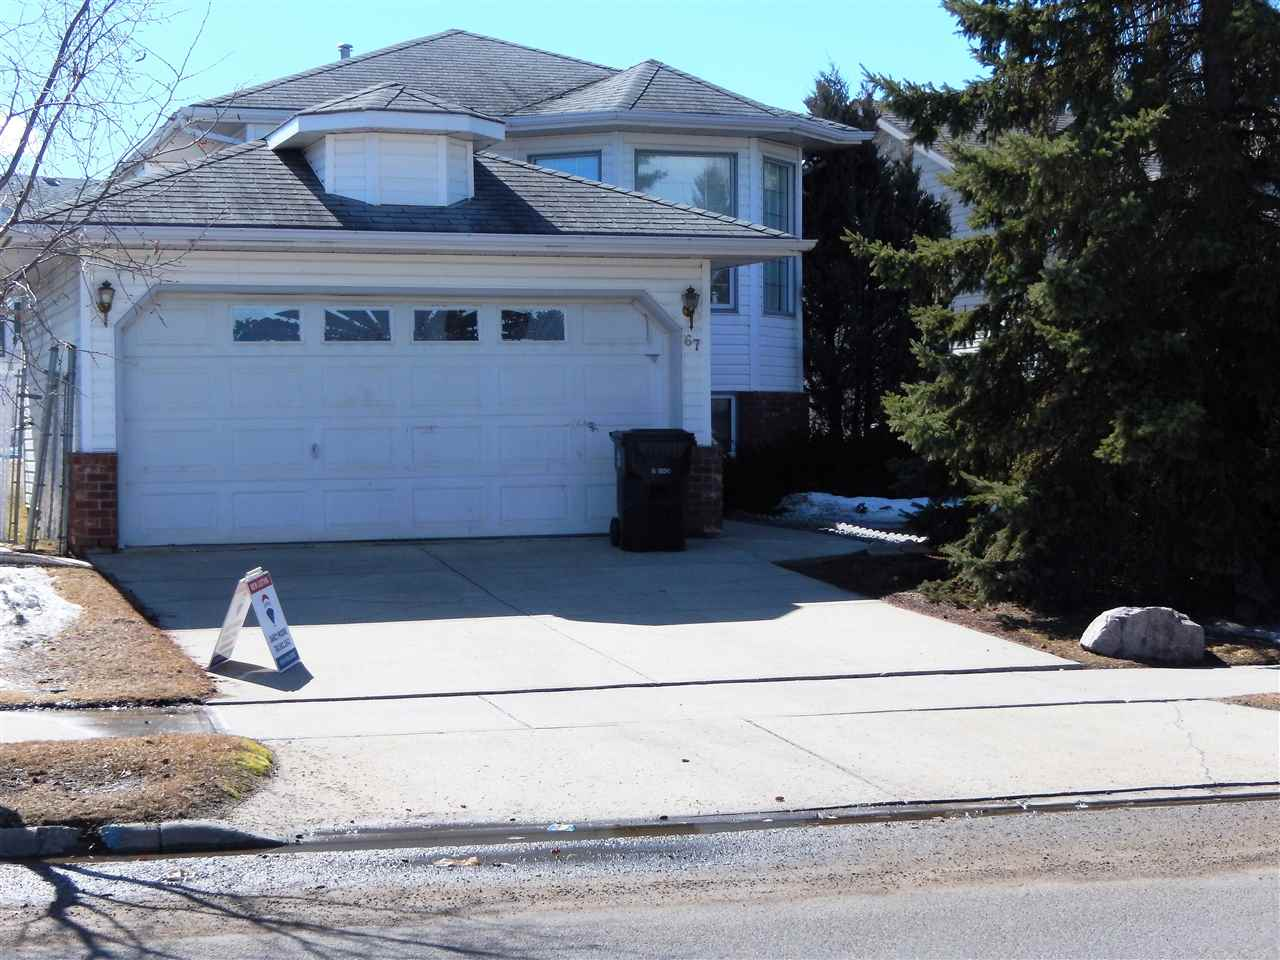 This BI-LEVEL in the wonderful area of DEER PARK has 2 bedrs up and 2 down.  There is a 4 PCE BATHR on the main and a 3 PCE BATHR downstairs.  The main floor has a nice layout with the U-shaped kitchen beside the Dining area which leads out the patio doors to the back deck. The basement is complete with a Family room, but needs some repairs to the drywall and needs flooring.  The whole house could use paint & new flooring as well. Try your handywork to get this home back up to the state it deserves!